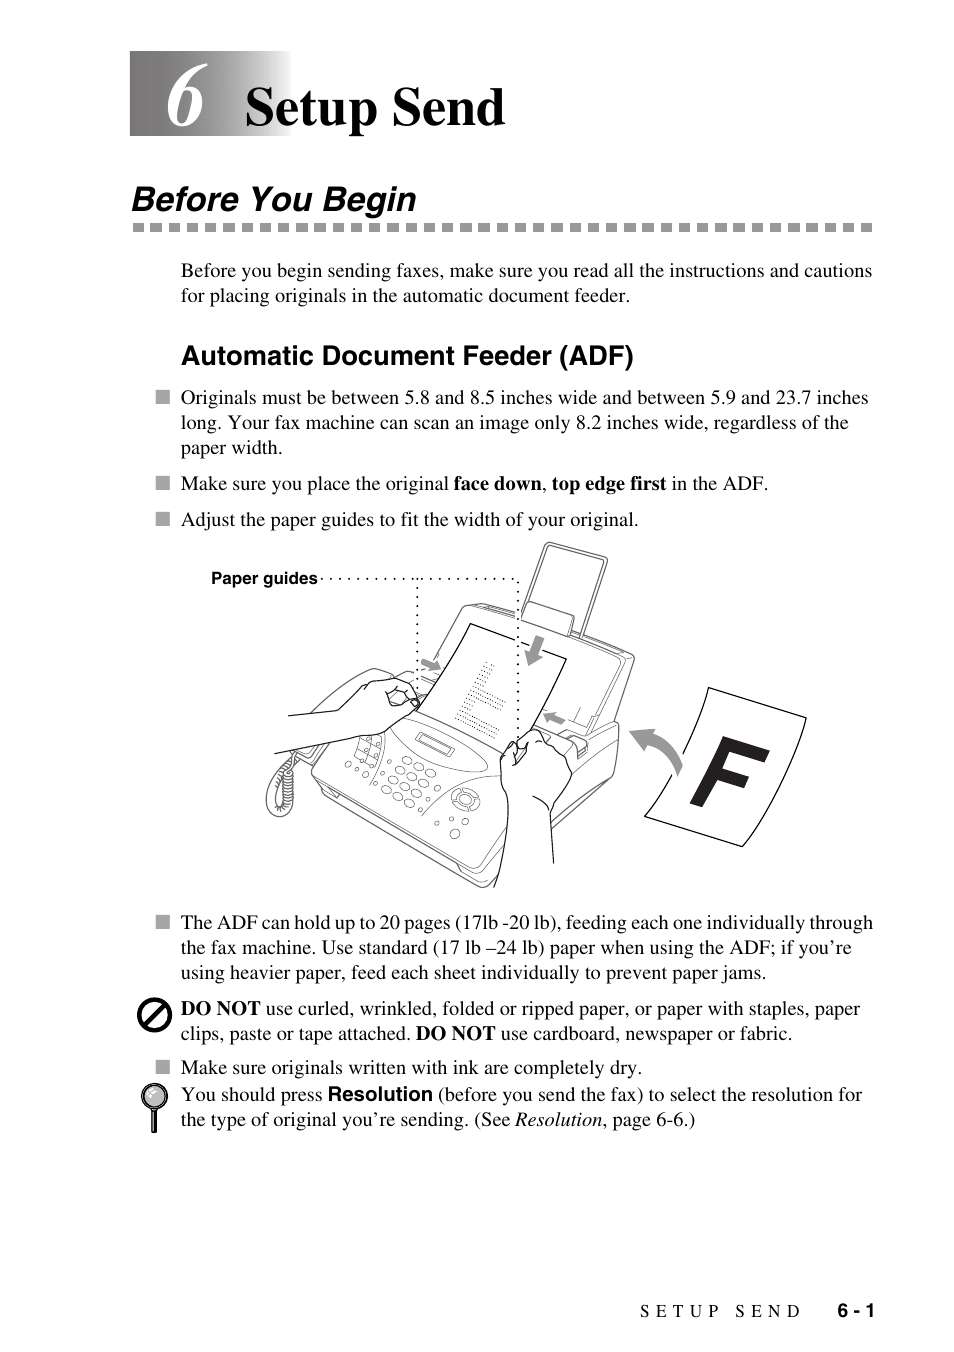 6 setup send, Before you begin, Automatic document feeder (adf)   Brother  IntelliFAX 1270e User Manual   Page 51 / 108